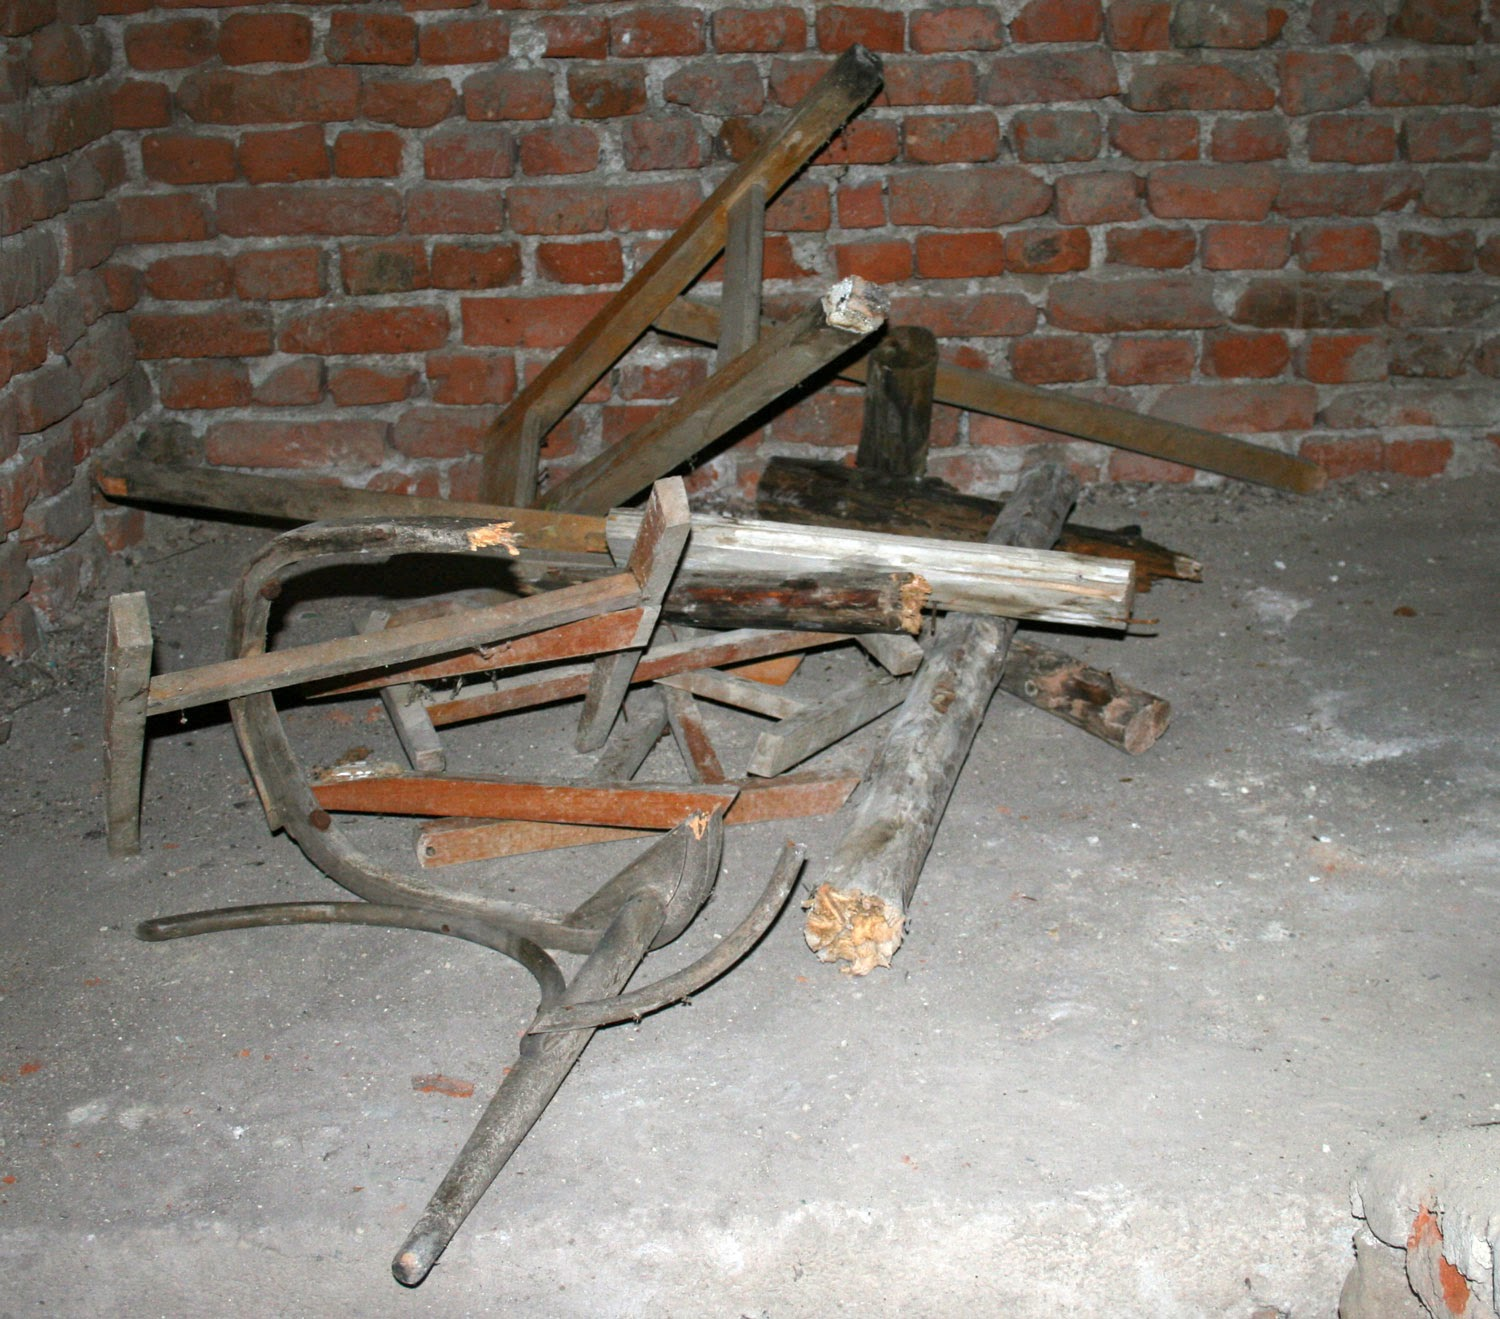 Some old furniture to break apart and burn